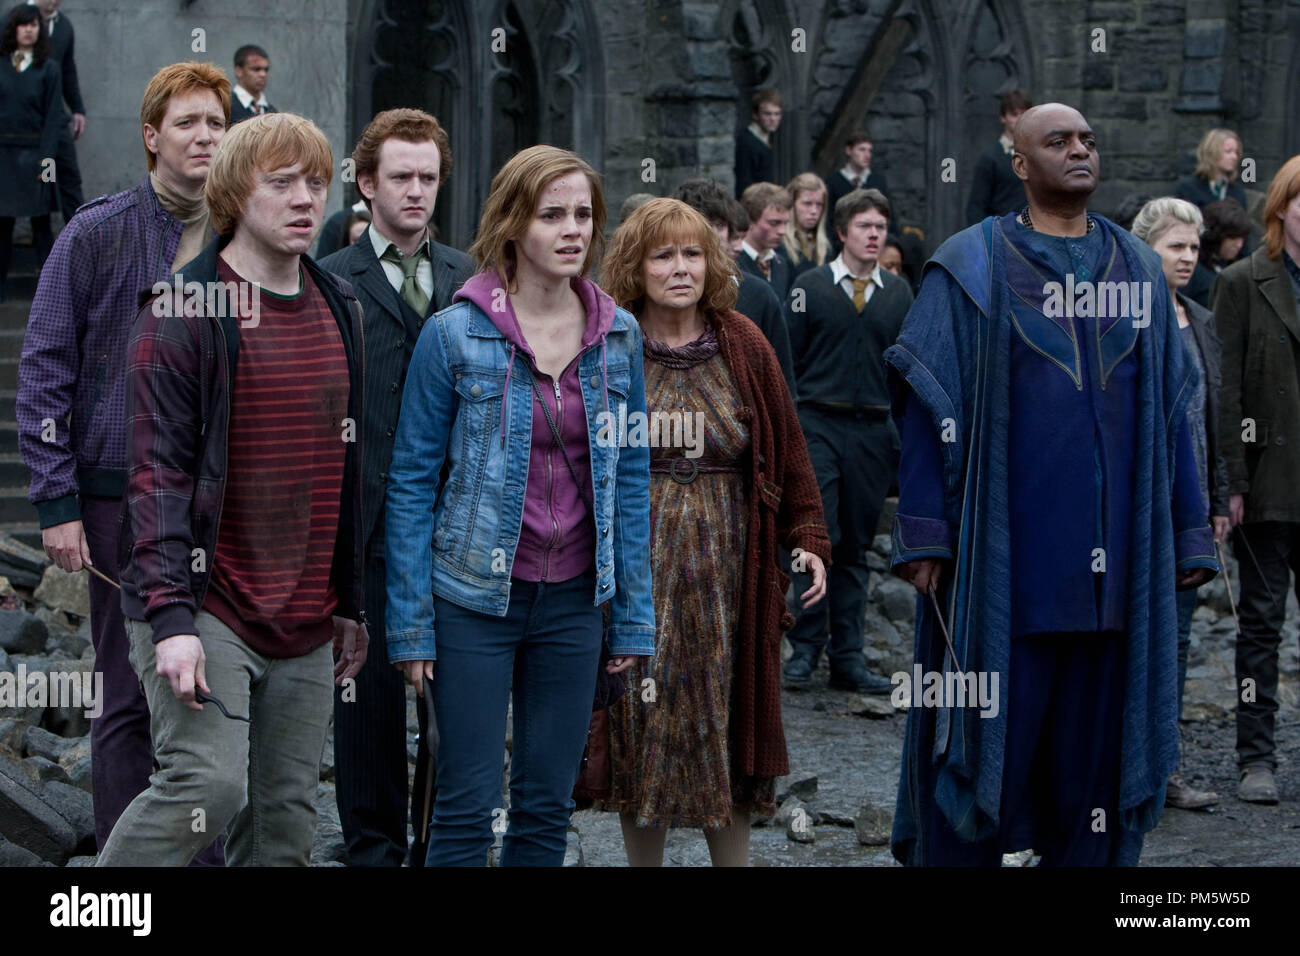 """(L-r) JAMES PHELPS as Fred Weasley, RUPERT GRINT as Ron Weasley, CHRIS RANKIN as Percy Weasley, EMMA WATSON as Hermione Granger, JULIE WALTERS as Molly Weasley and GEORGE HARRIS as Kingsley Shacklebolt in Warner Bros. Pictures' fantasy adventure """"HARRY POTTER AND THE DEATHLY HALLOWS – PART 2,"""" a Warner Bros. Pictures release. - Stock Image"""